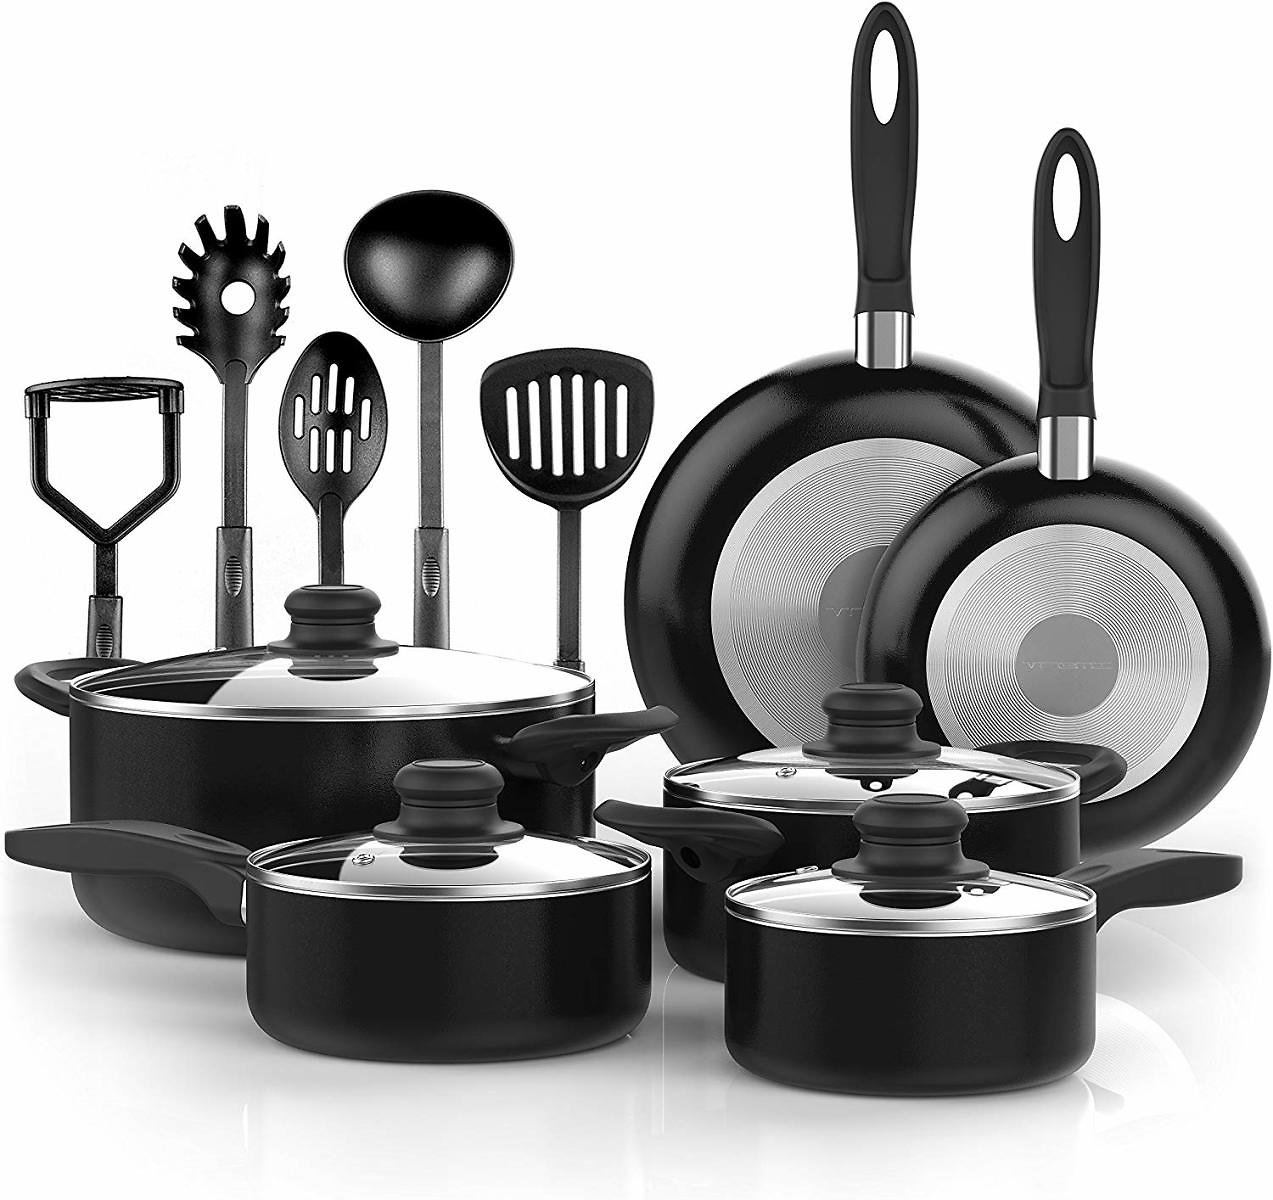 15 Pcs Nonstick Cookware Set - Durable Aluminum Pots and Pans with Cooking Utensils with Glass Lids